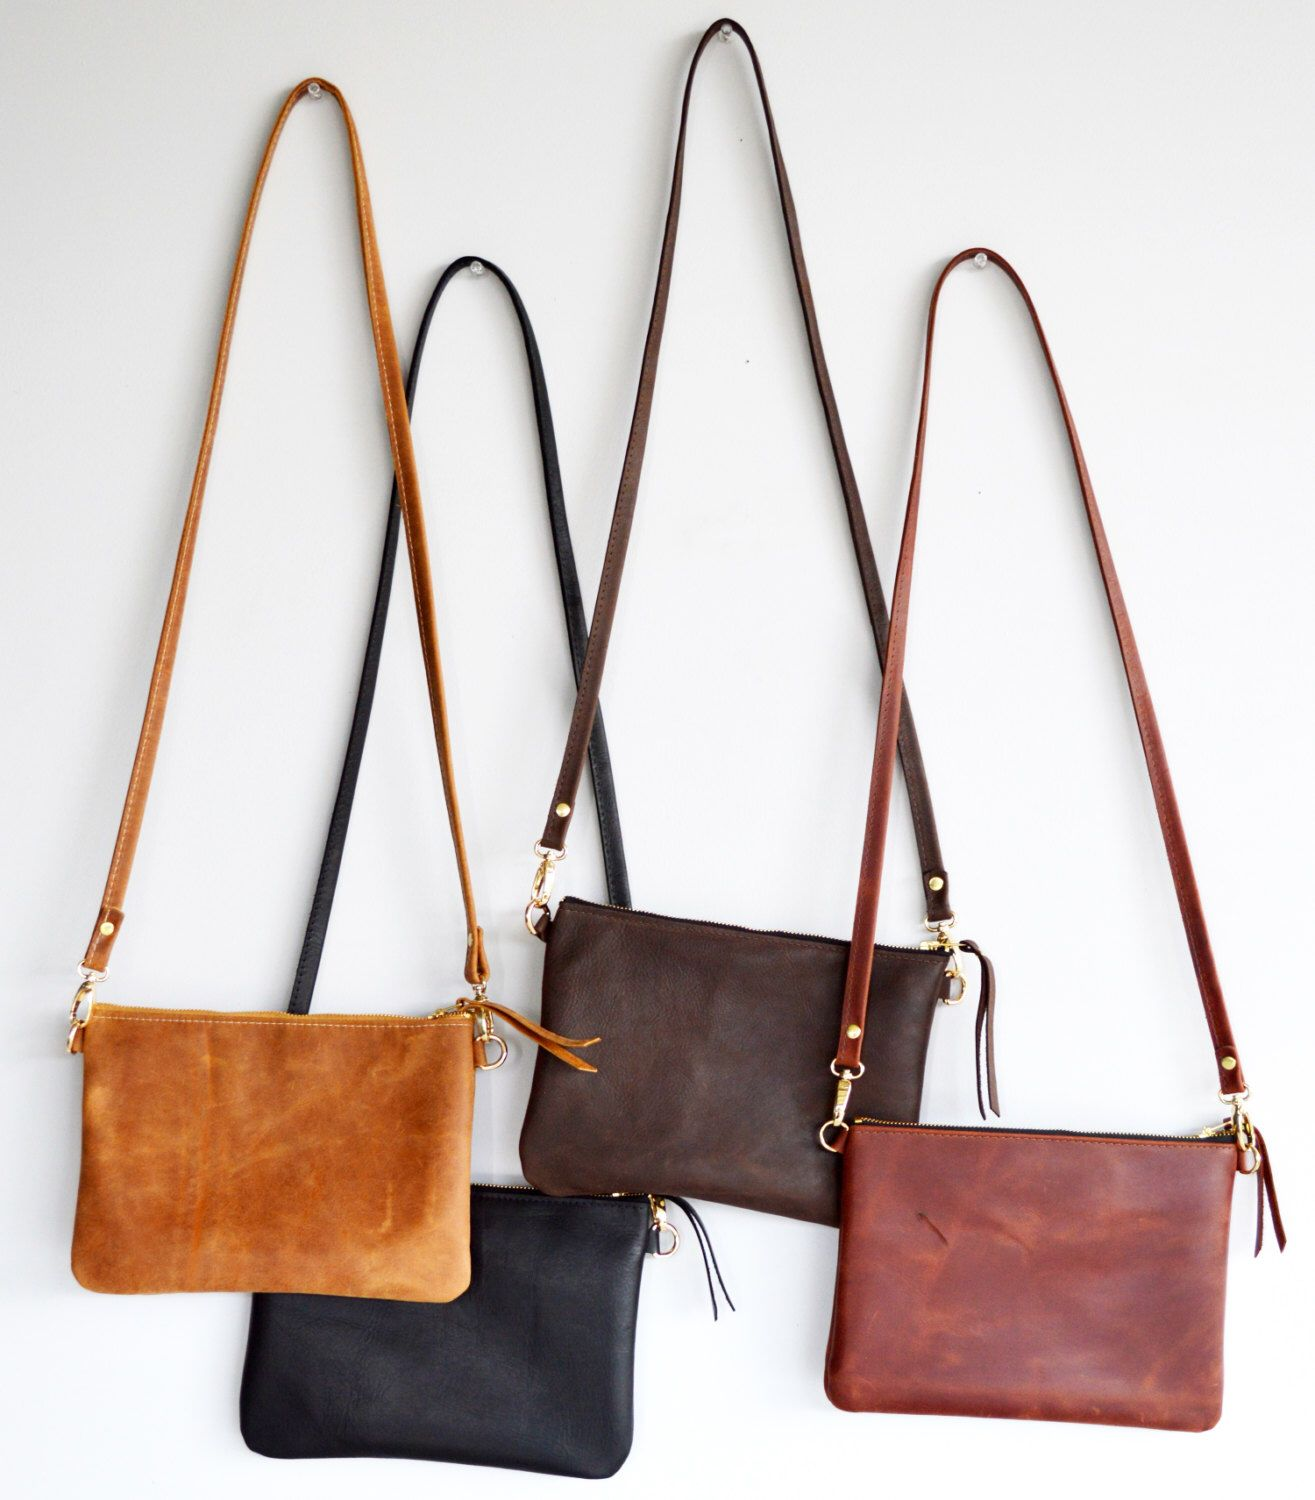 20a5d85d5b2c6 Small Leather Crossbody Bag. Minimalist Leather Purse Converts to Wristlet  Clutch Bag. Choose Your Colour - Black, Toffee, Brown or Whiskey